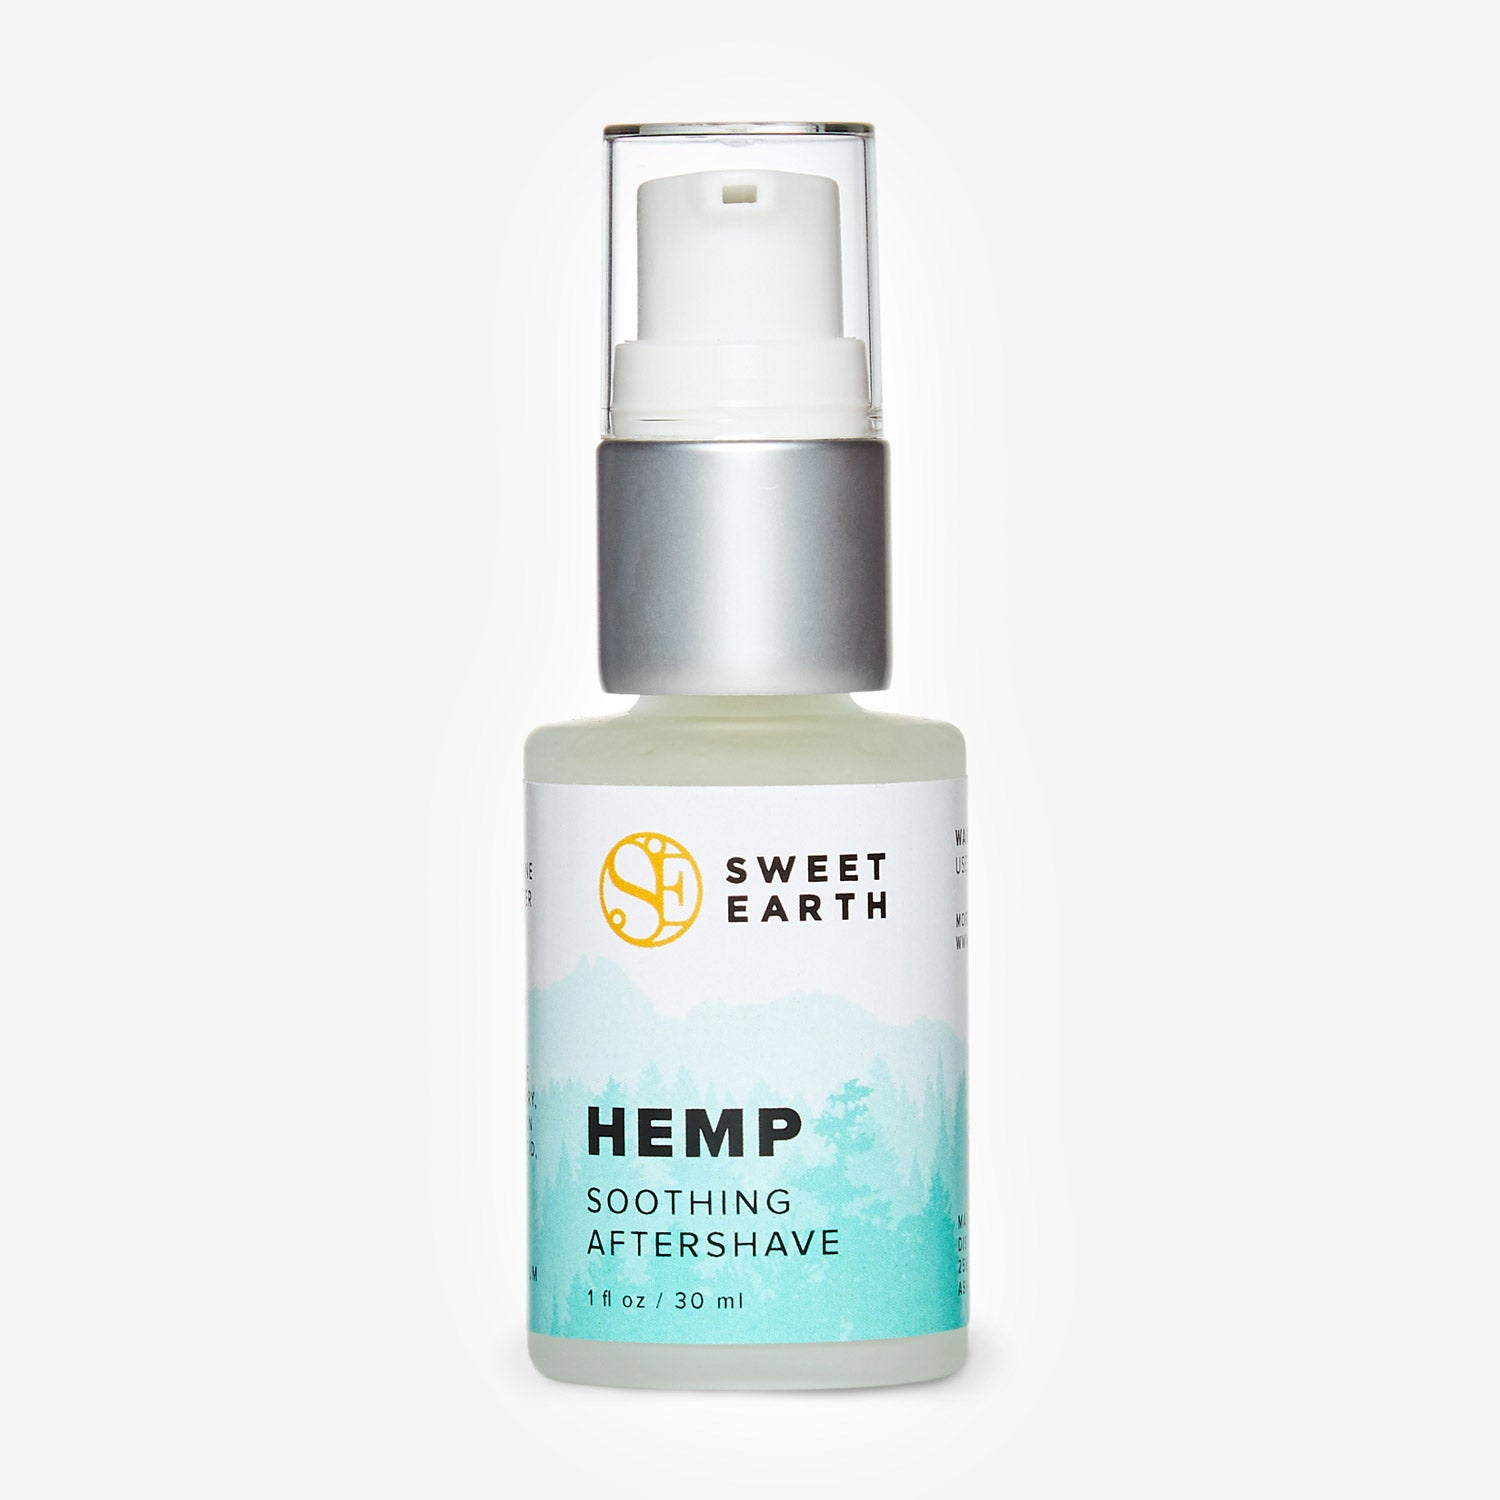 Hemp Soothing Aftershave